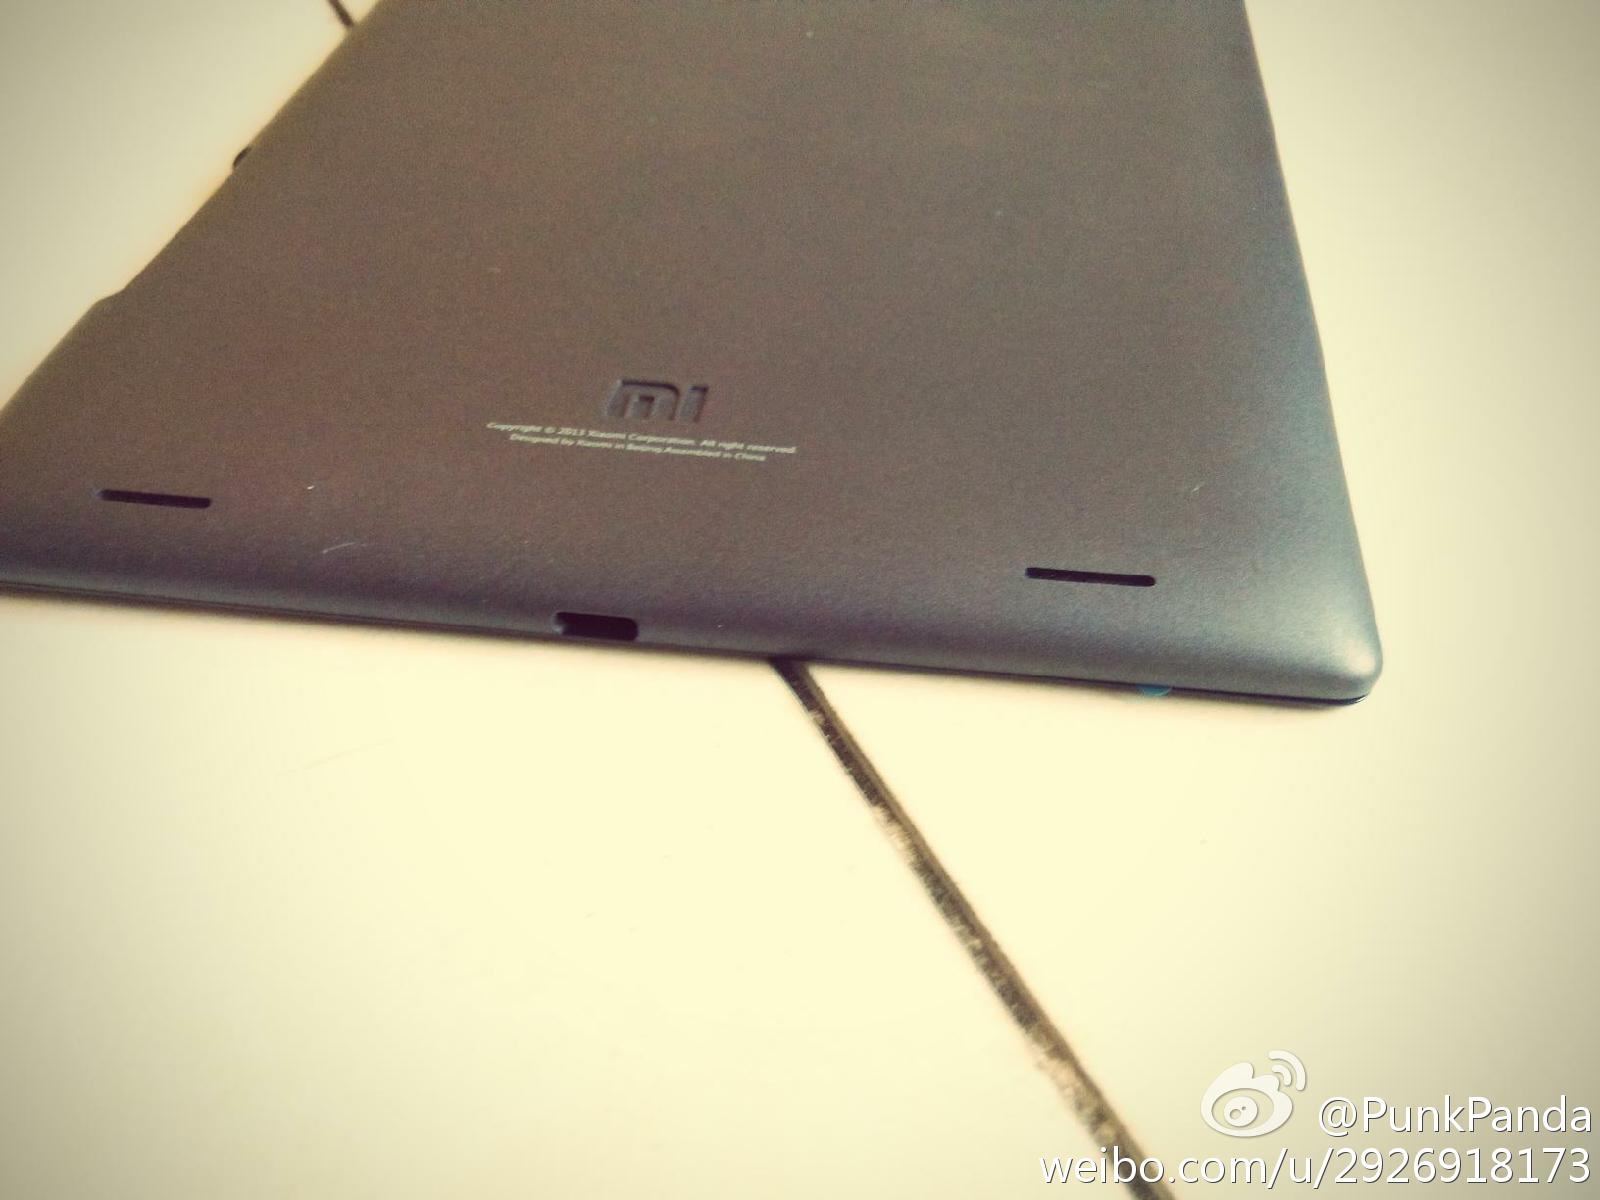 Leaked photo of Xiaomi tablet